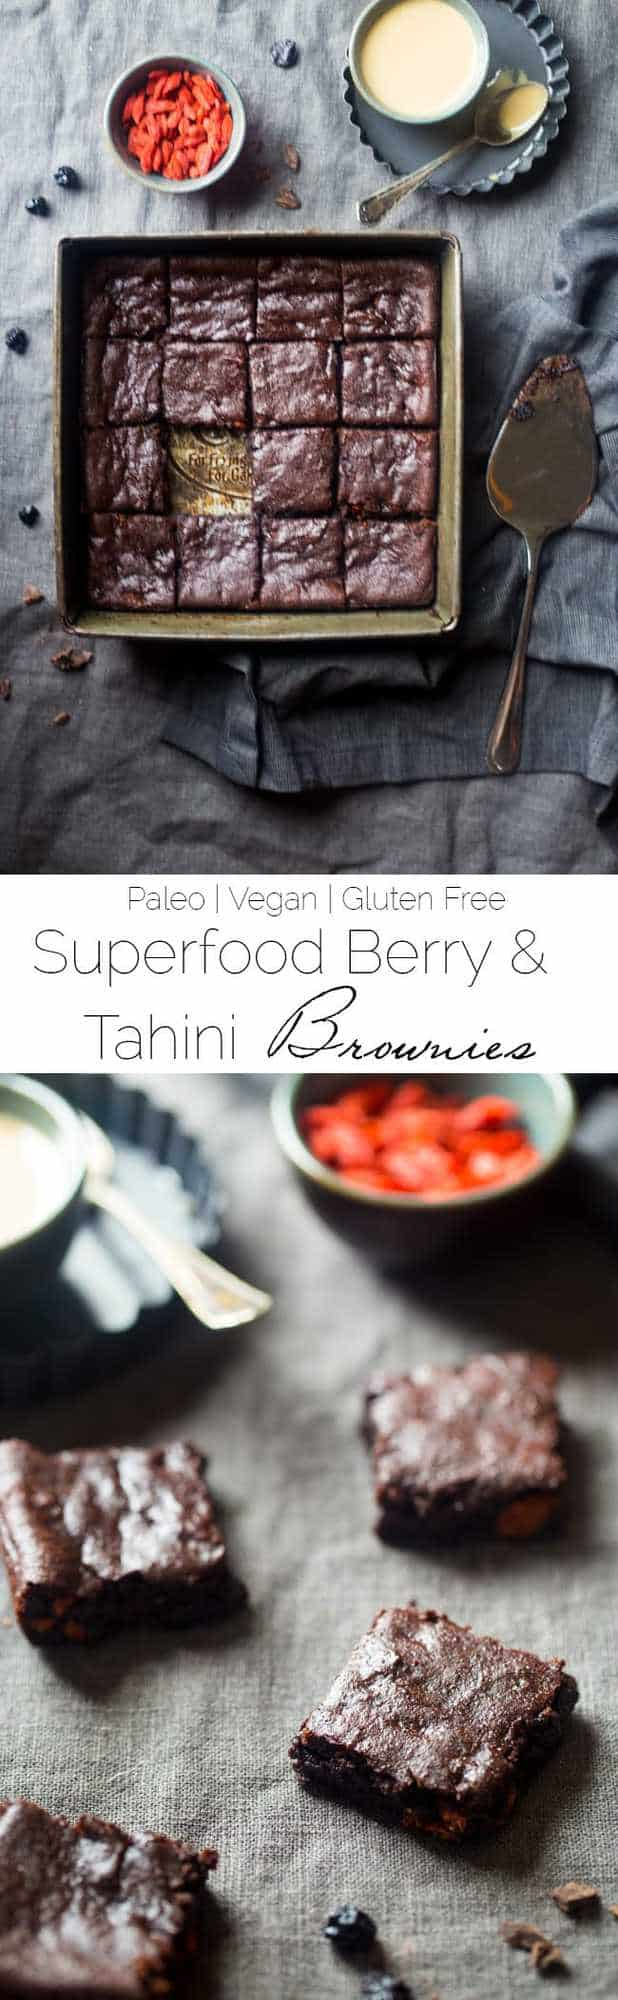 Vegan Superfood Berry Tahini Brownies - These vegan brownies are so dense and chewy that you'd never know they're a superfood-packed, healthy and paleo friendly dessert for only 107 calories! | Foodfaithfitness.com | @FoodFaithFit